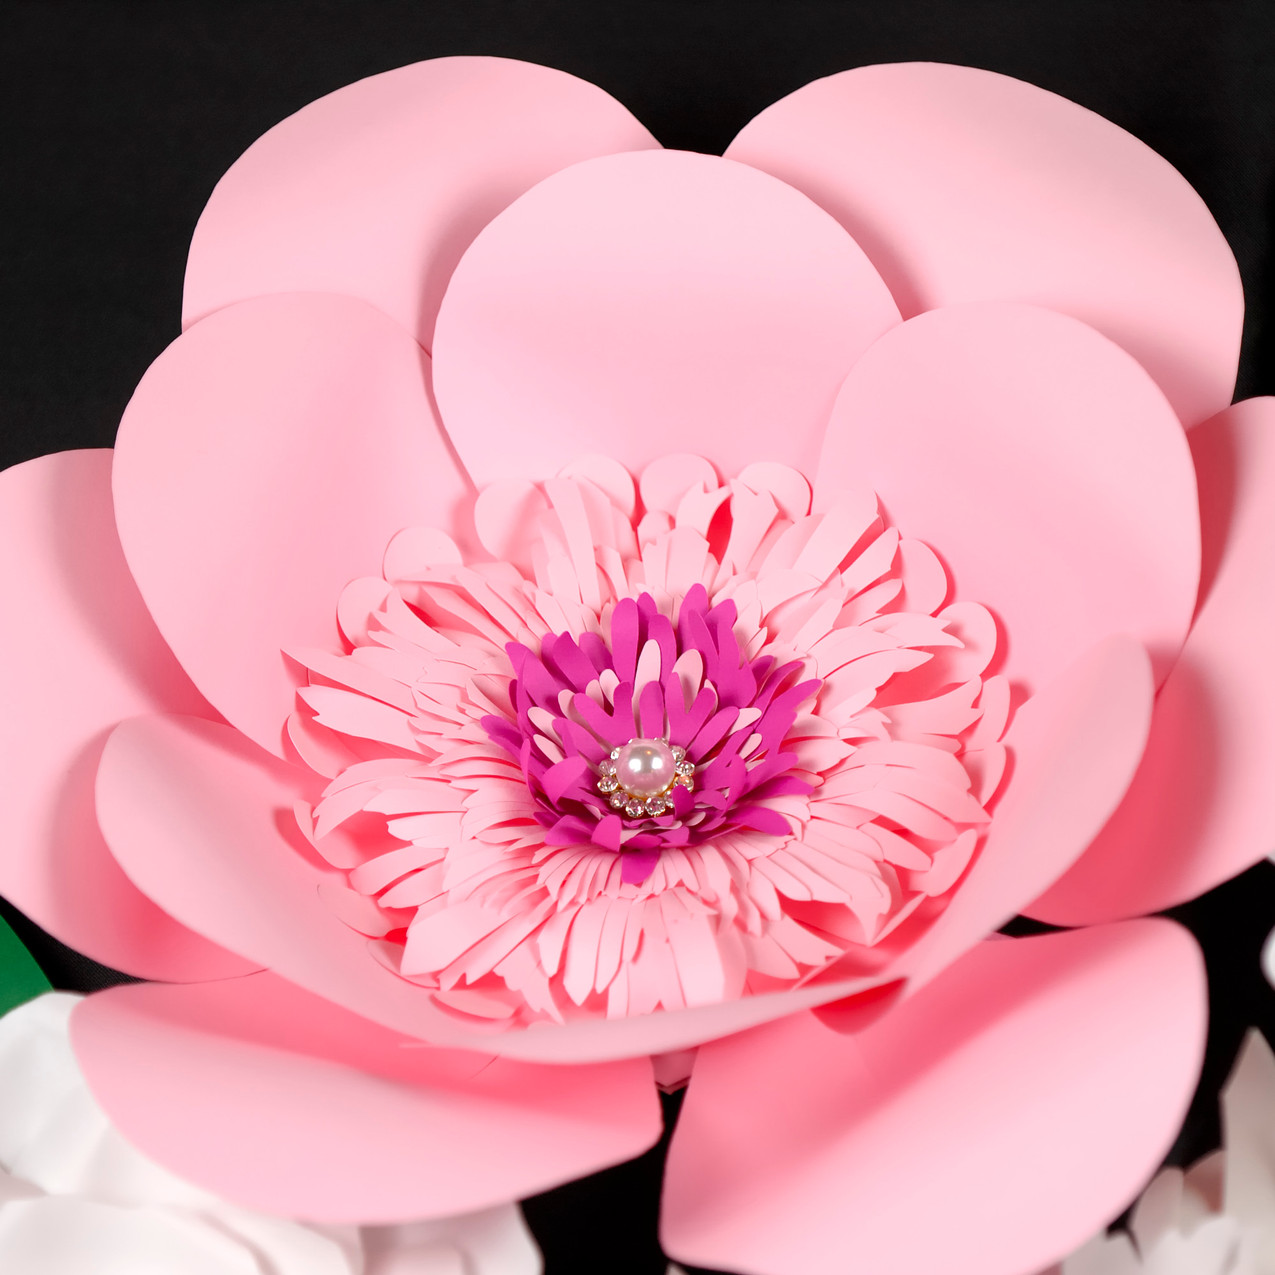 Wall giant flower decor - pink flower 2.